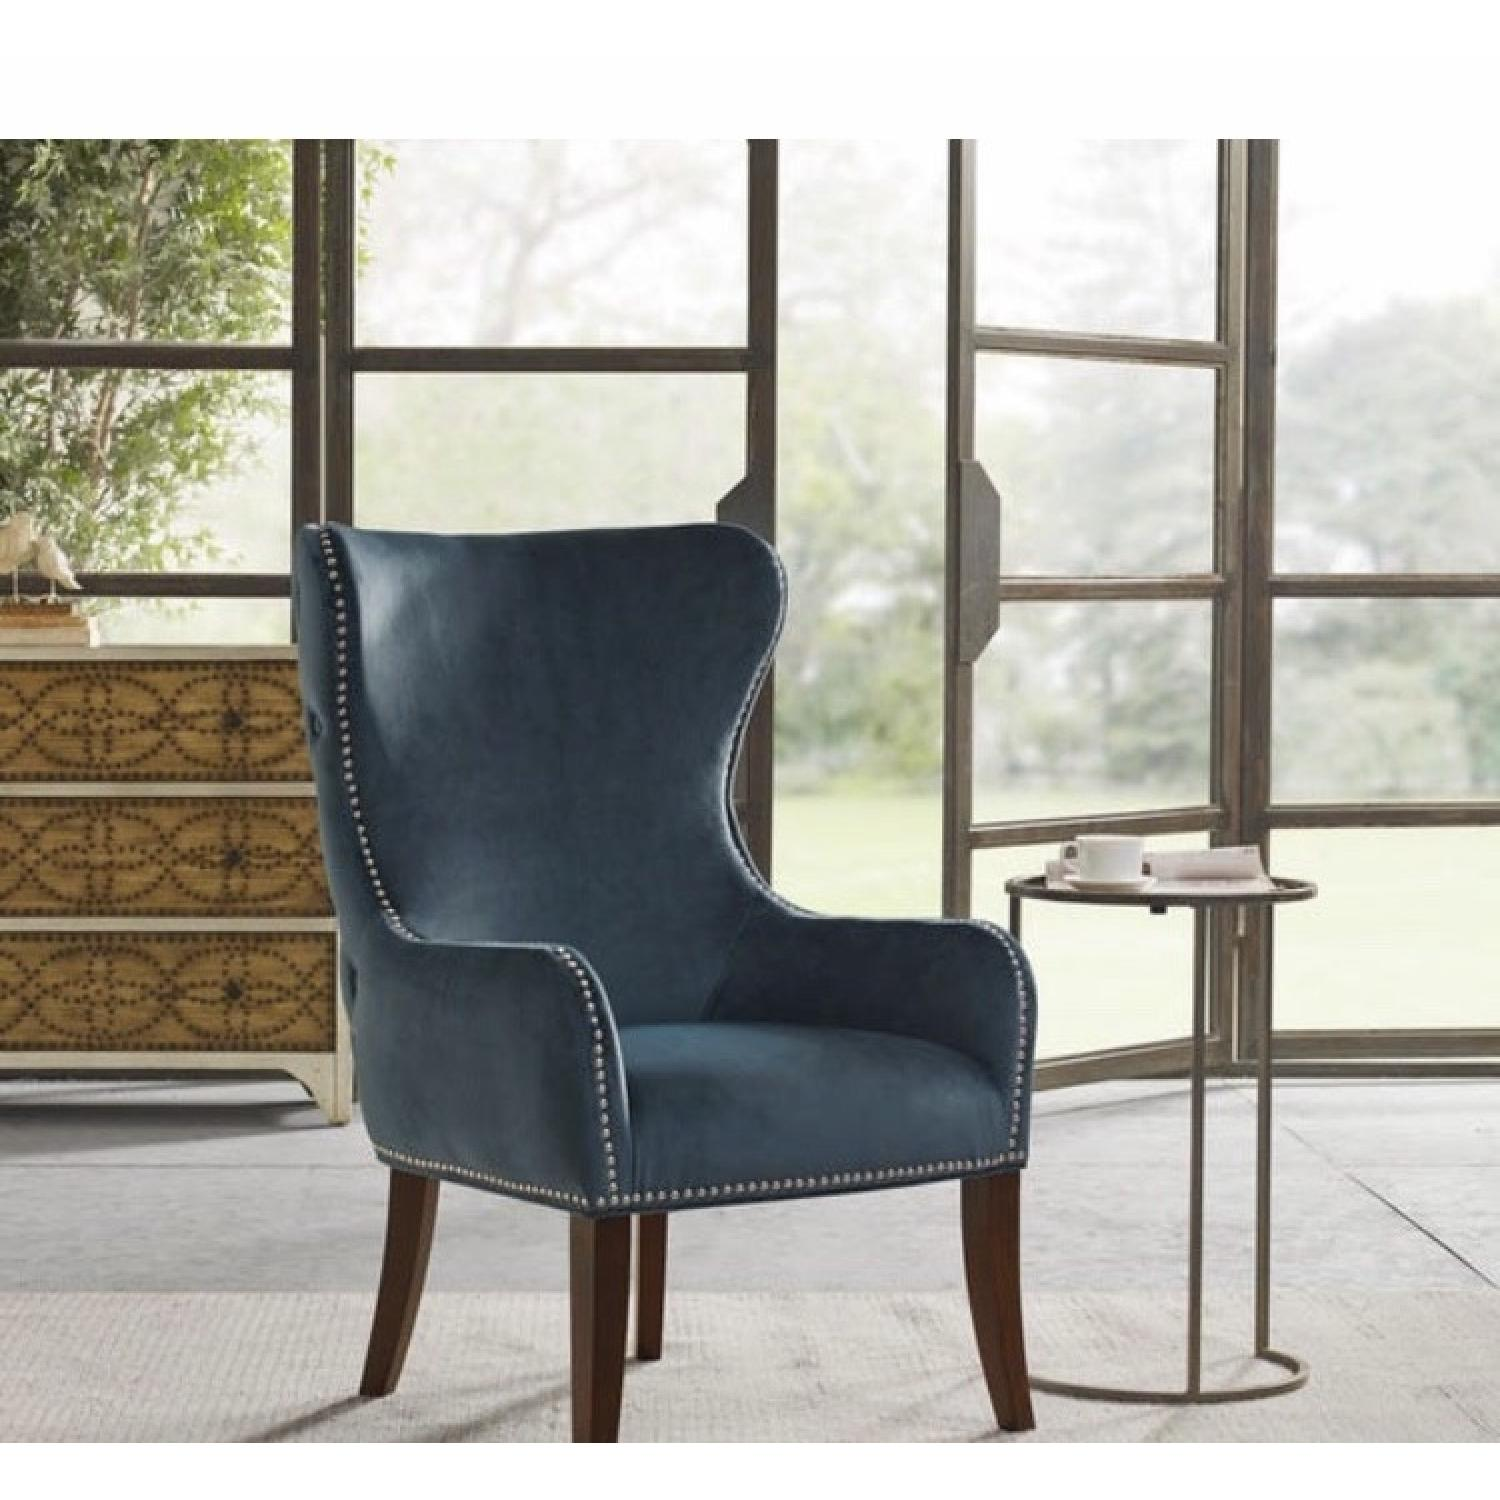 Madison Park Statement Armchairs - image-0